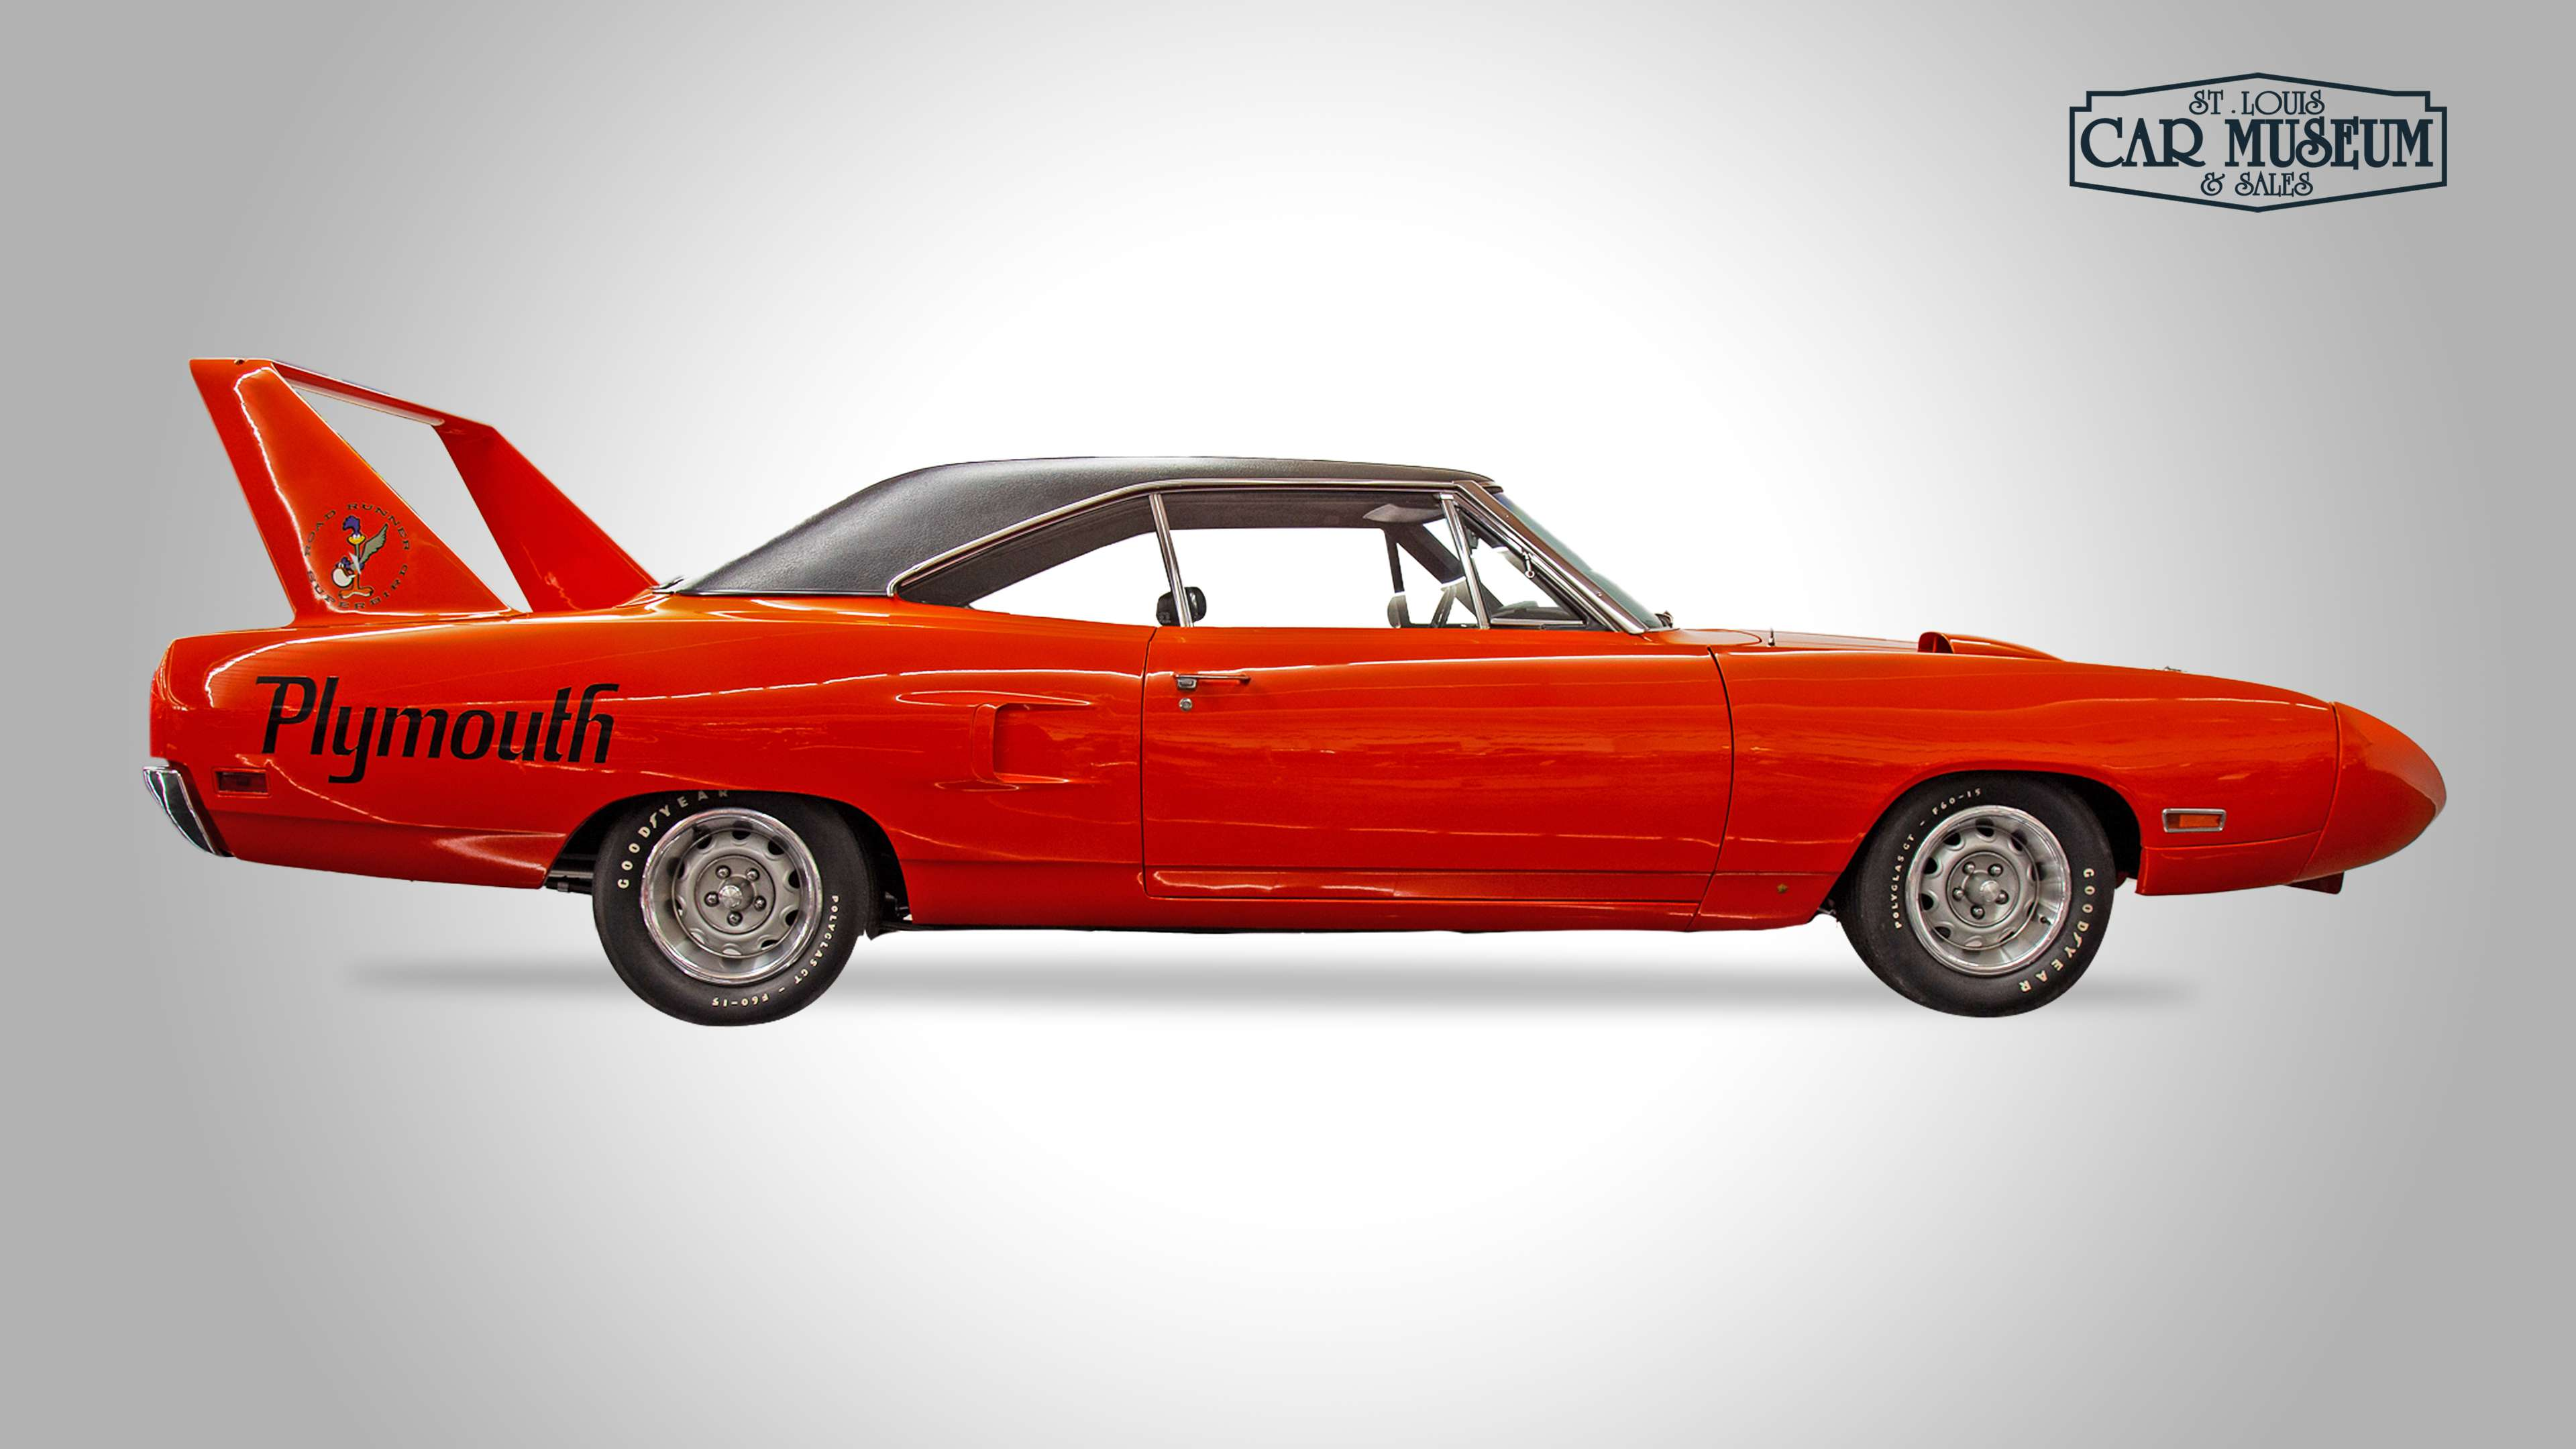 1970 Plymouth Superbird wallpaper